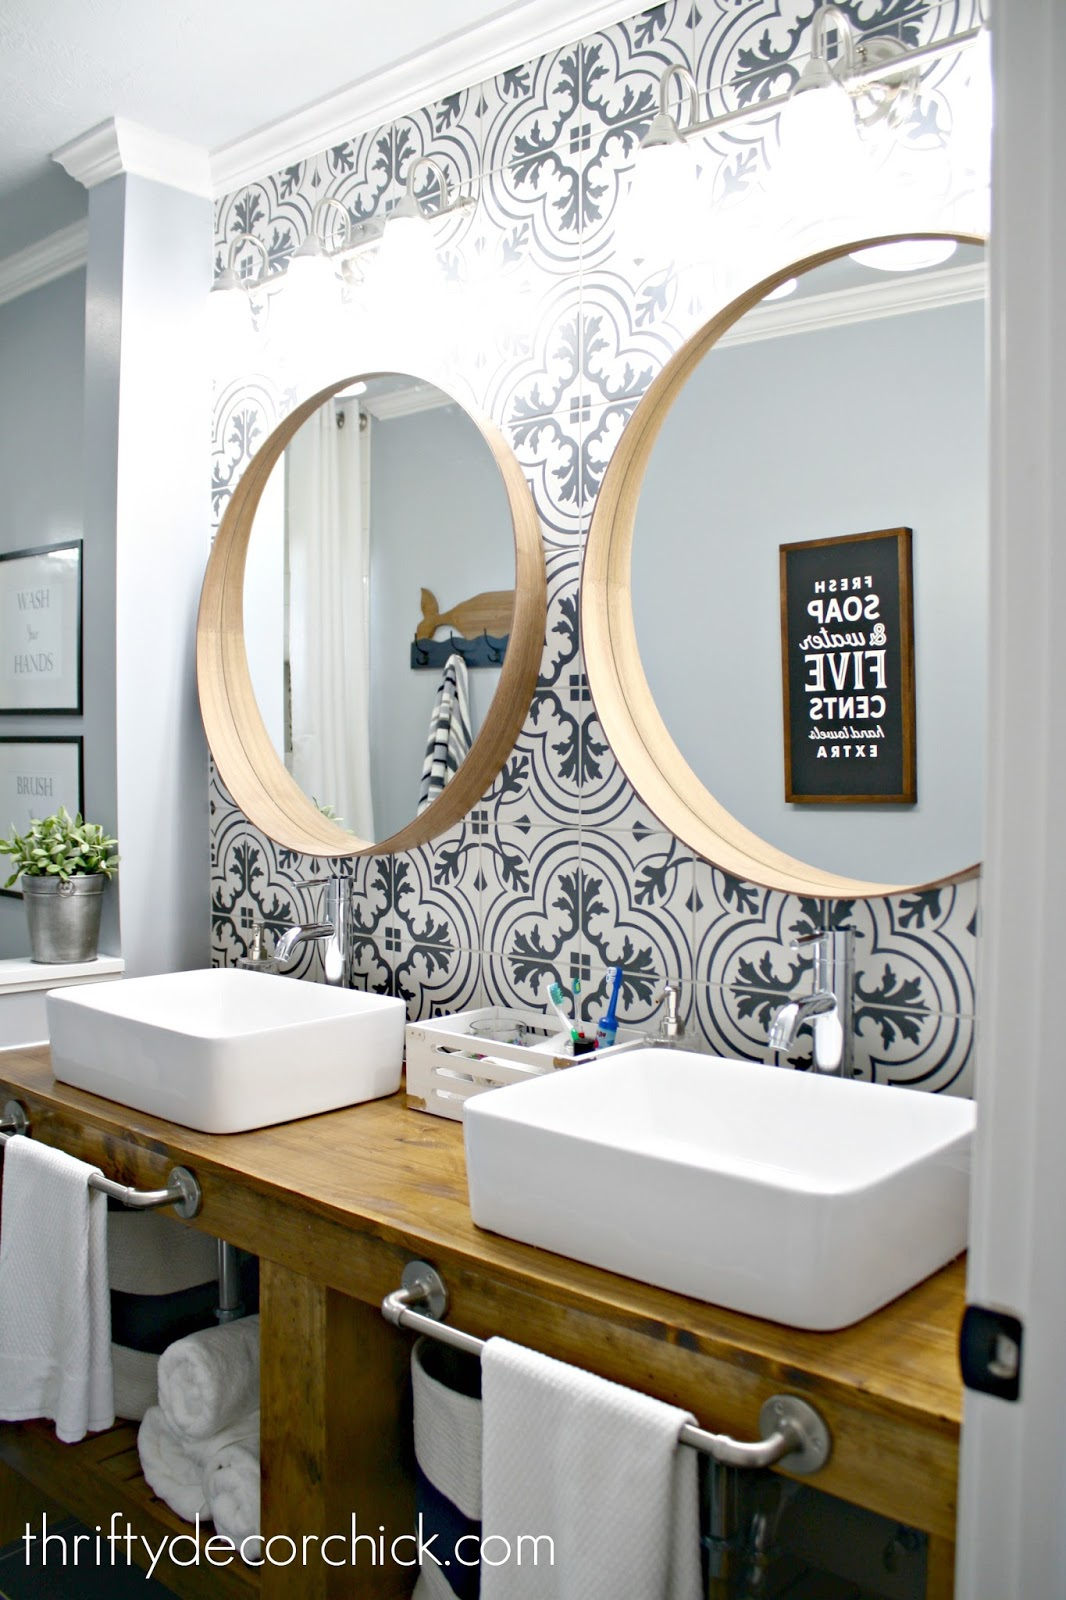 Hits And Misses The Bathroom Renovations From Thrifty Decor Chick - Thrifty bathroom remodel